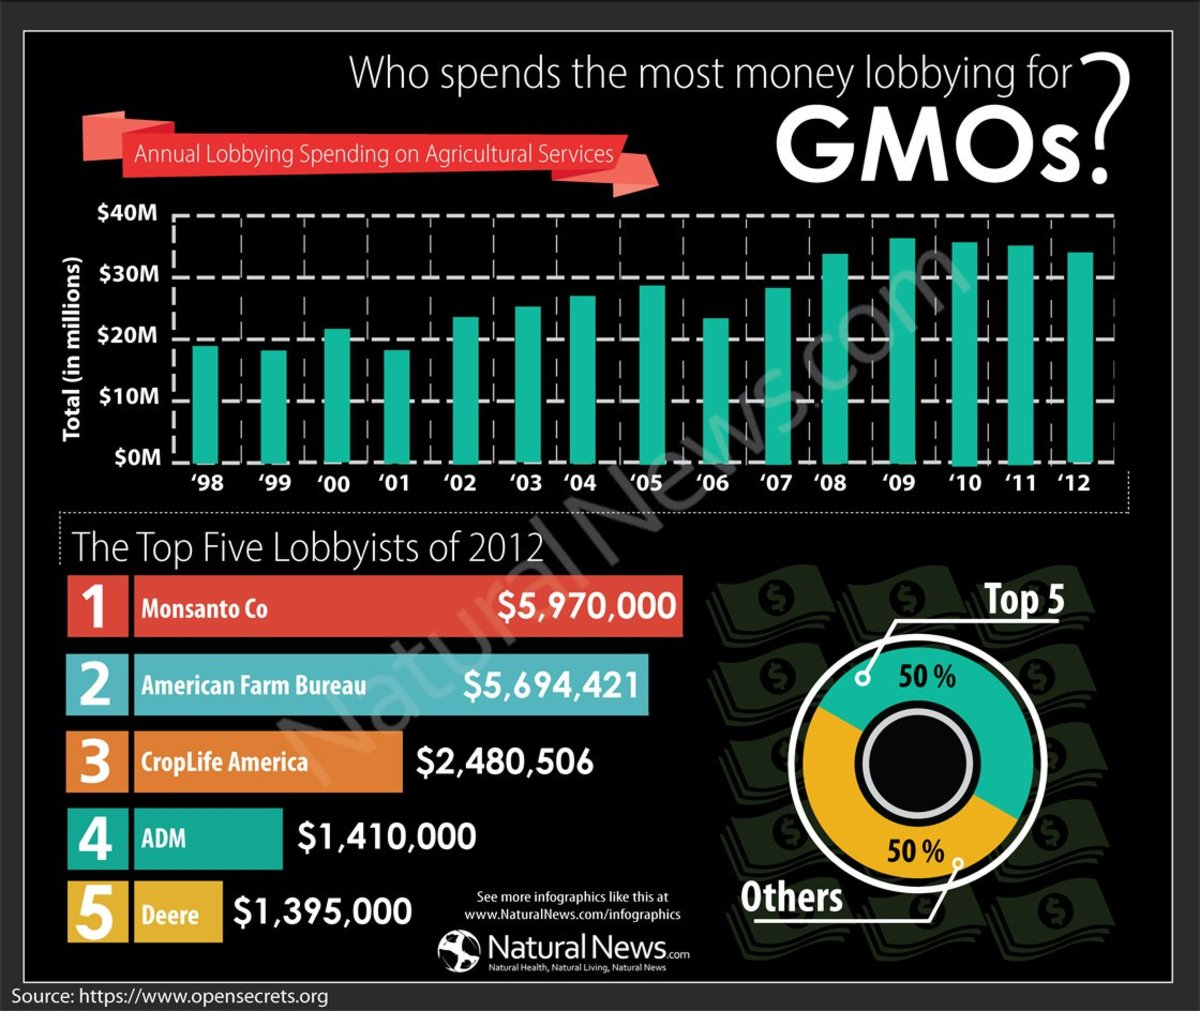 Infographic-Who-Spends-the-Most-Money-Lobbying-GMOs-2012-1120